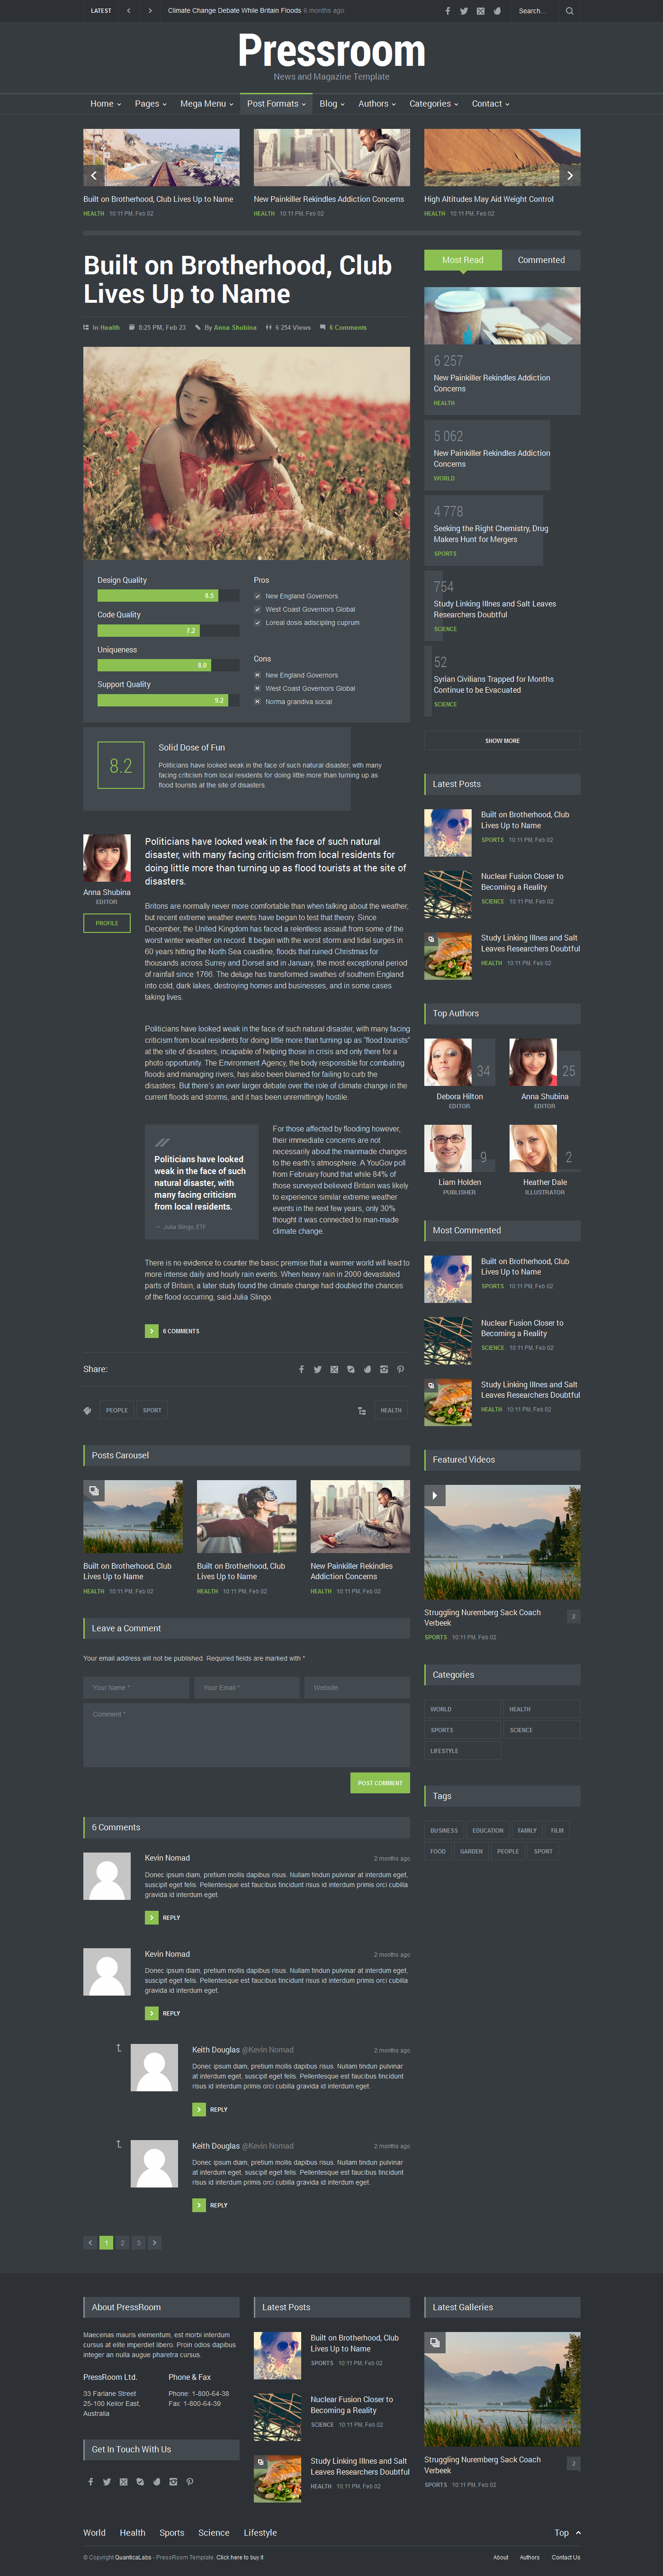 Pressroom - Responsive News and Magazine Template by QuanticaLabs ...